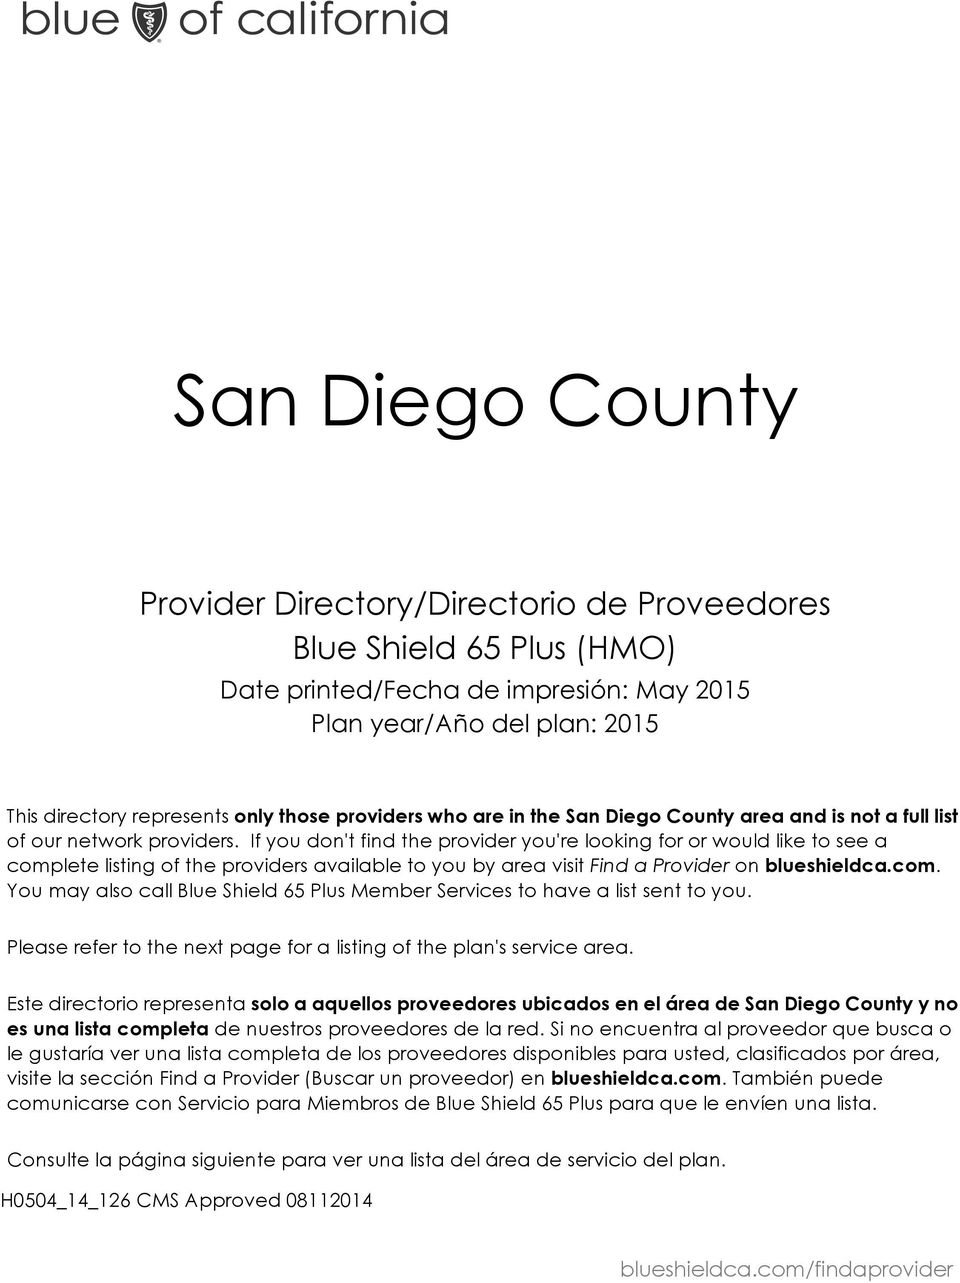 If you don't find the provider you're looking for or would like to see a complete listing of the providers available to you by area visit Find a Provider on blueshieldca.com. You may also call Blue Shield 65 Plus Member Services to have a list sent to you.